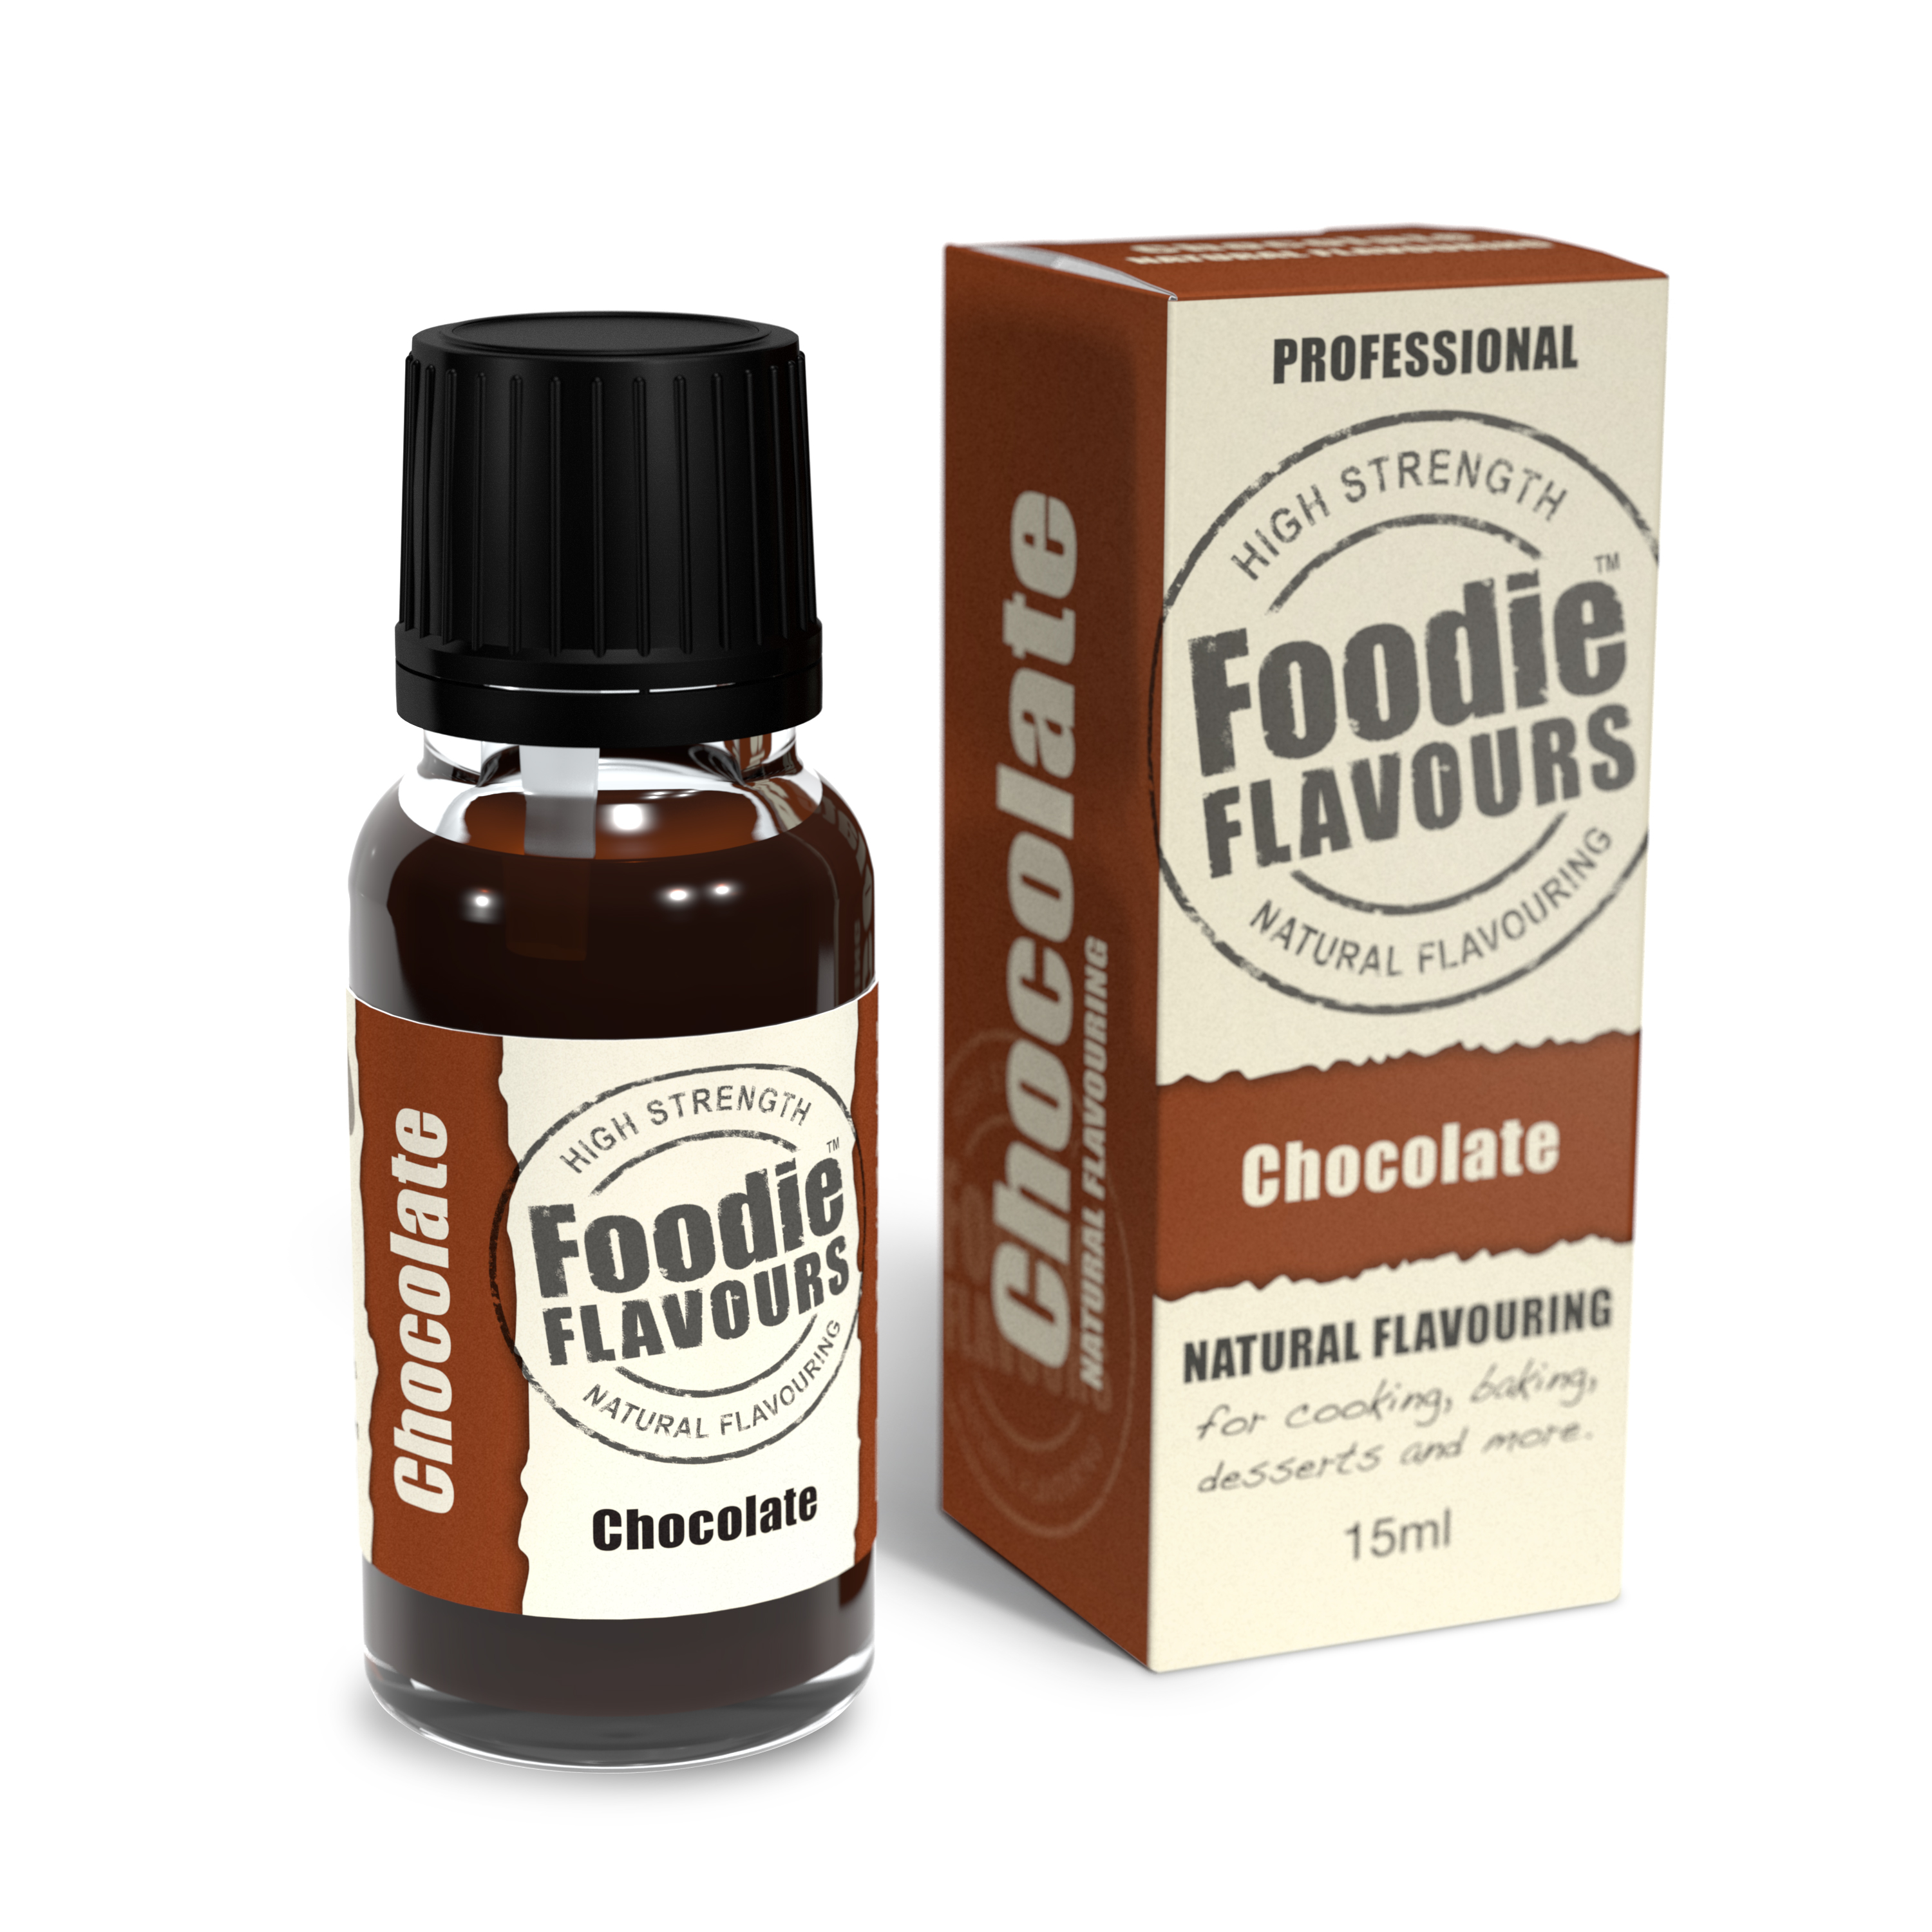 Chocolate natural flavouring